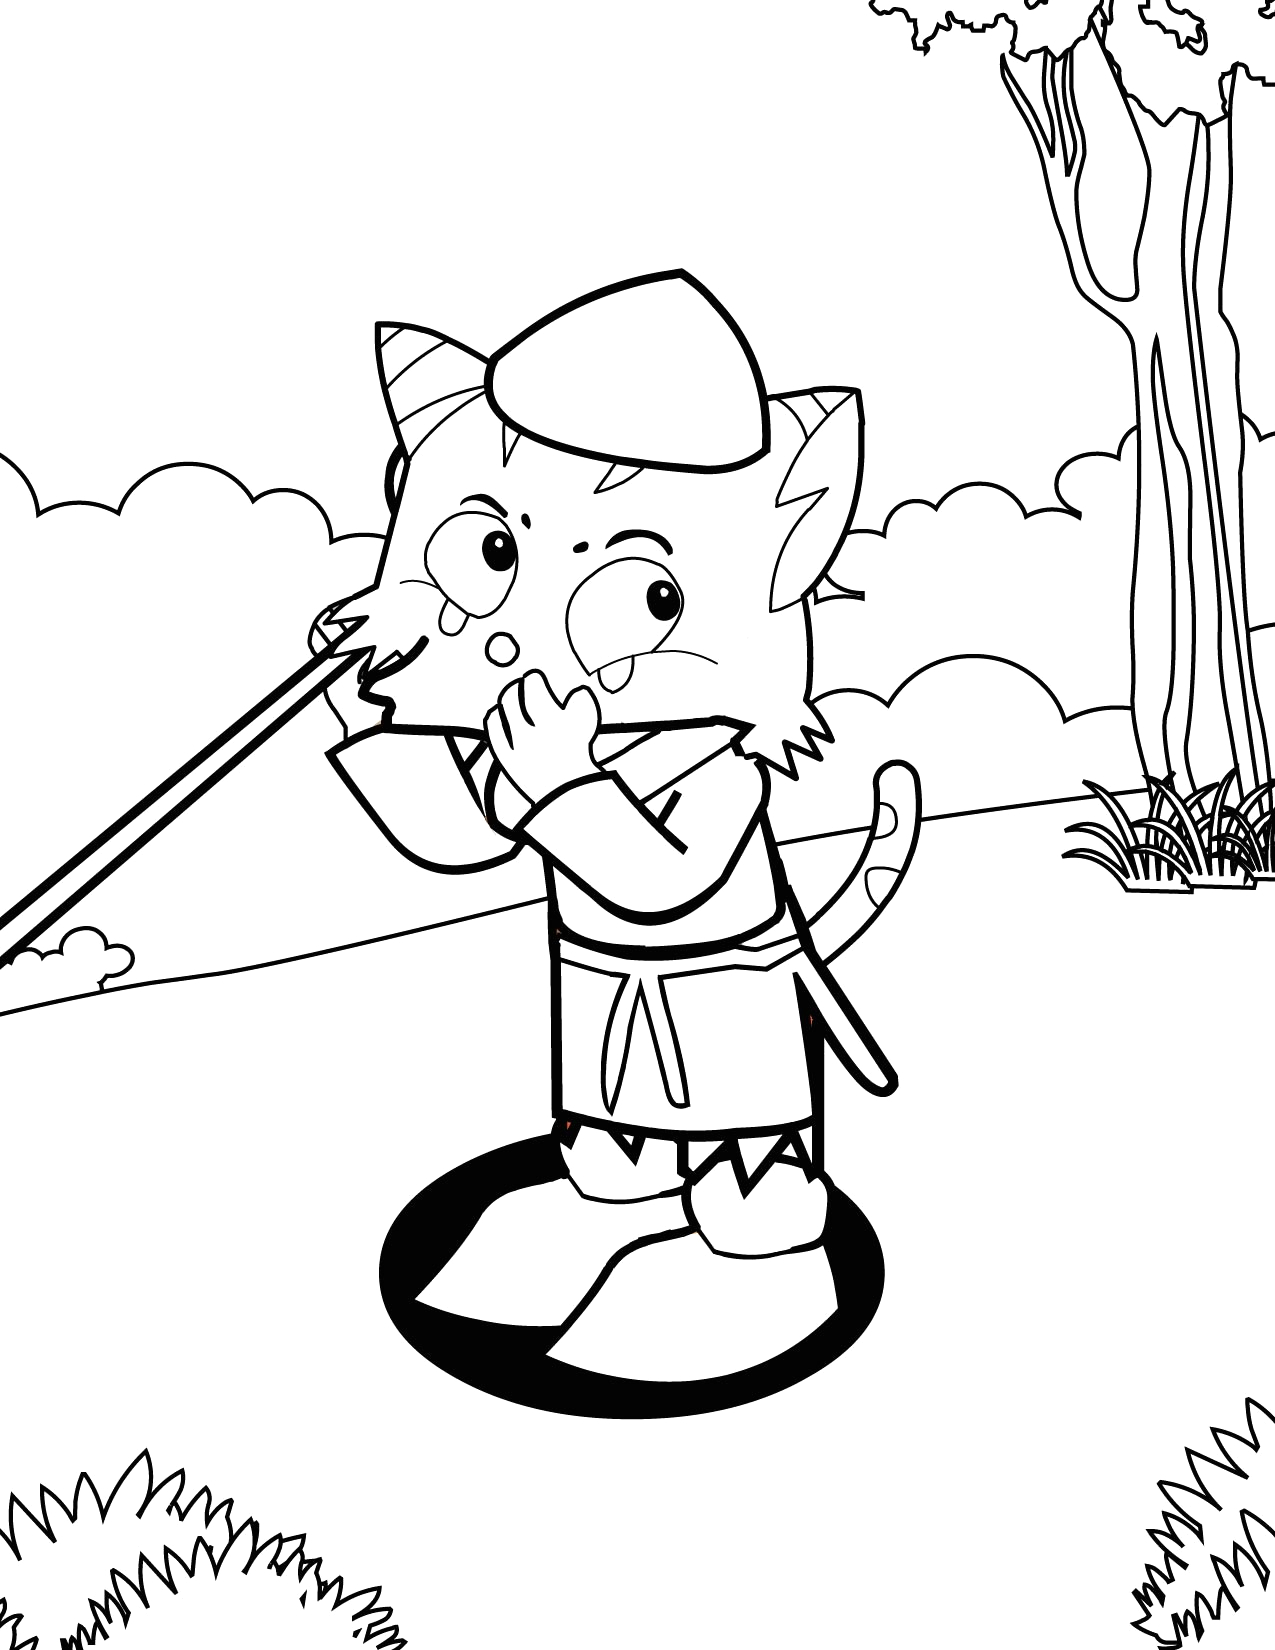 the boy who cried wolf coloring page